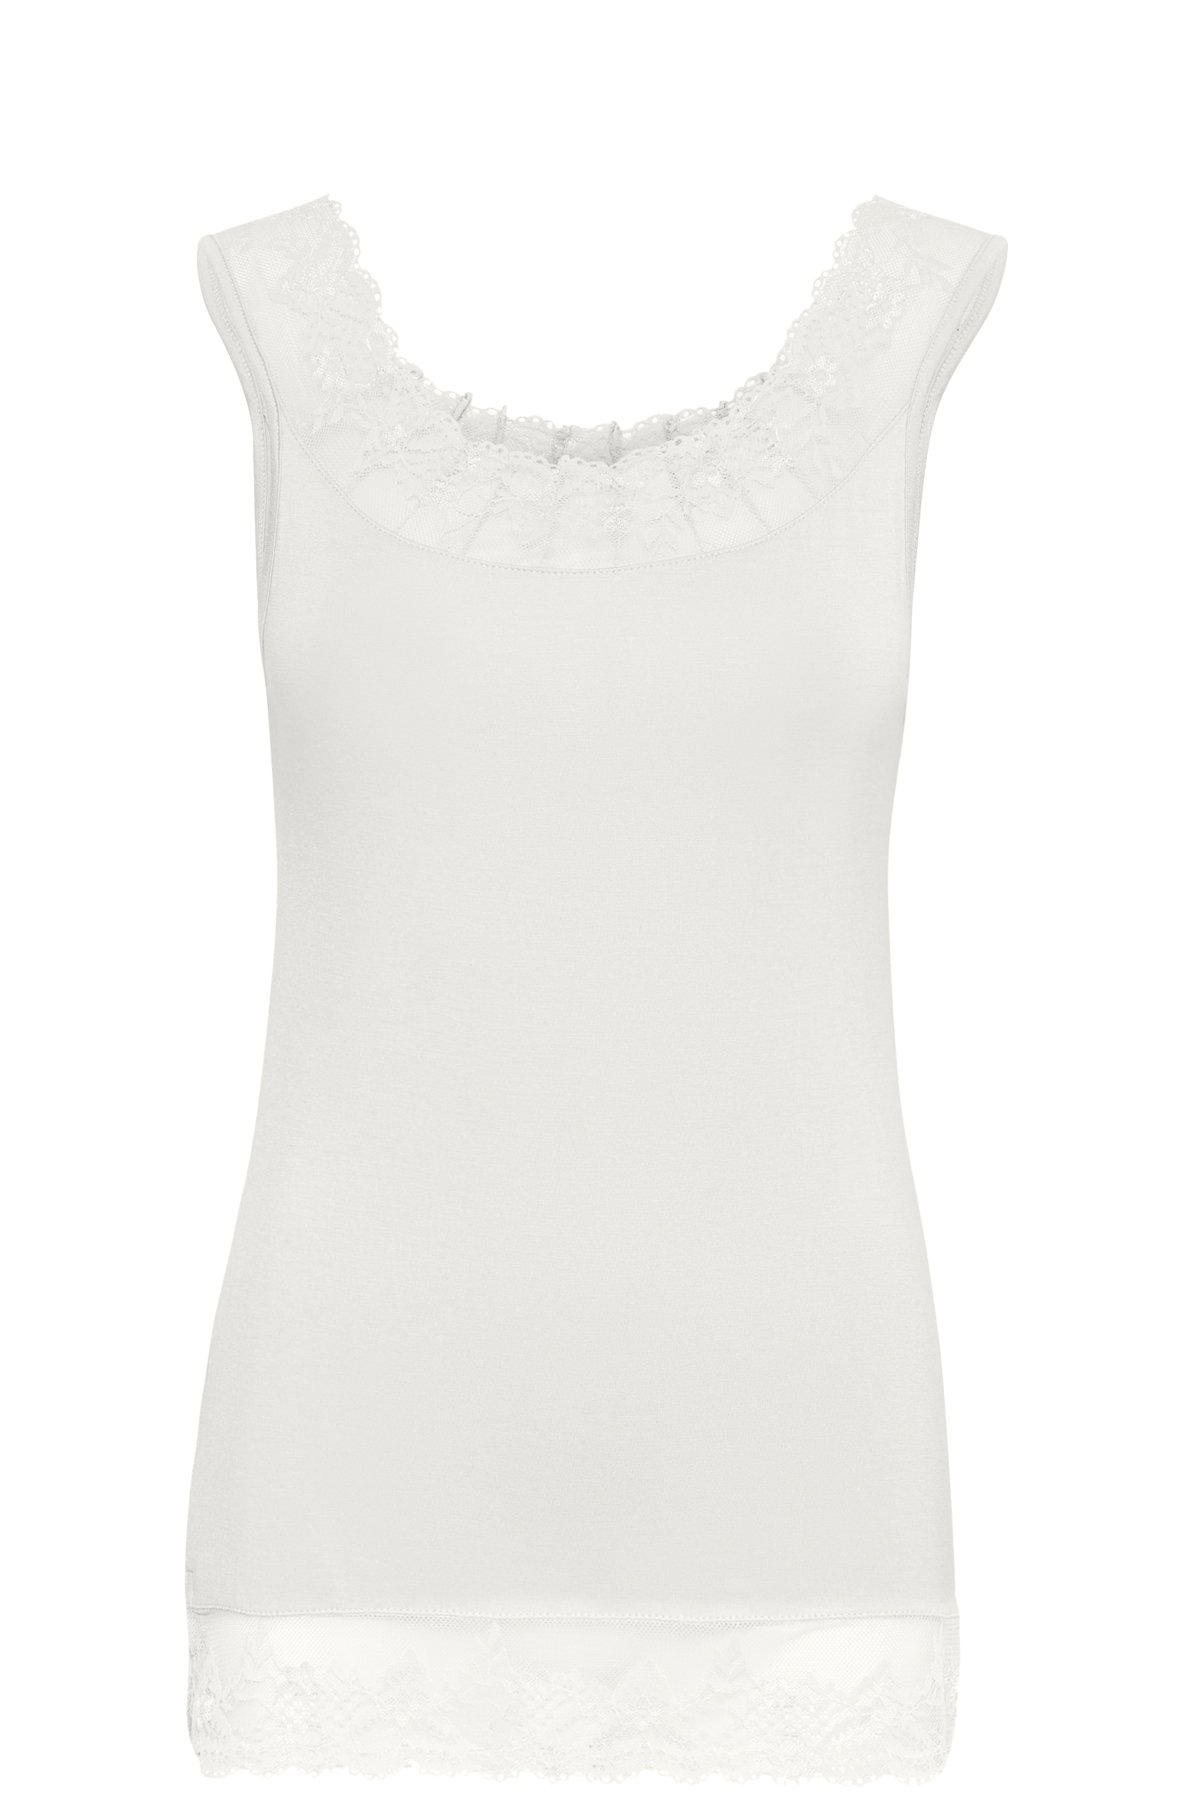 Image of Cream Dame Jerseytop - Off-white